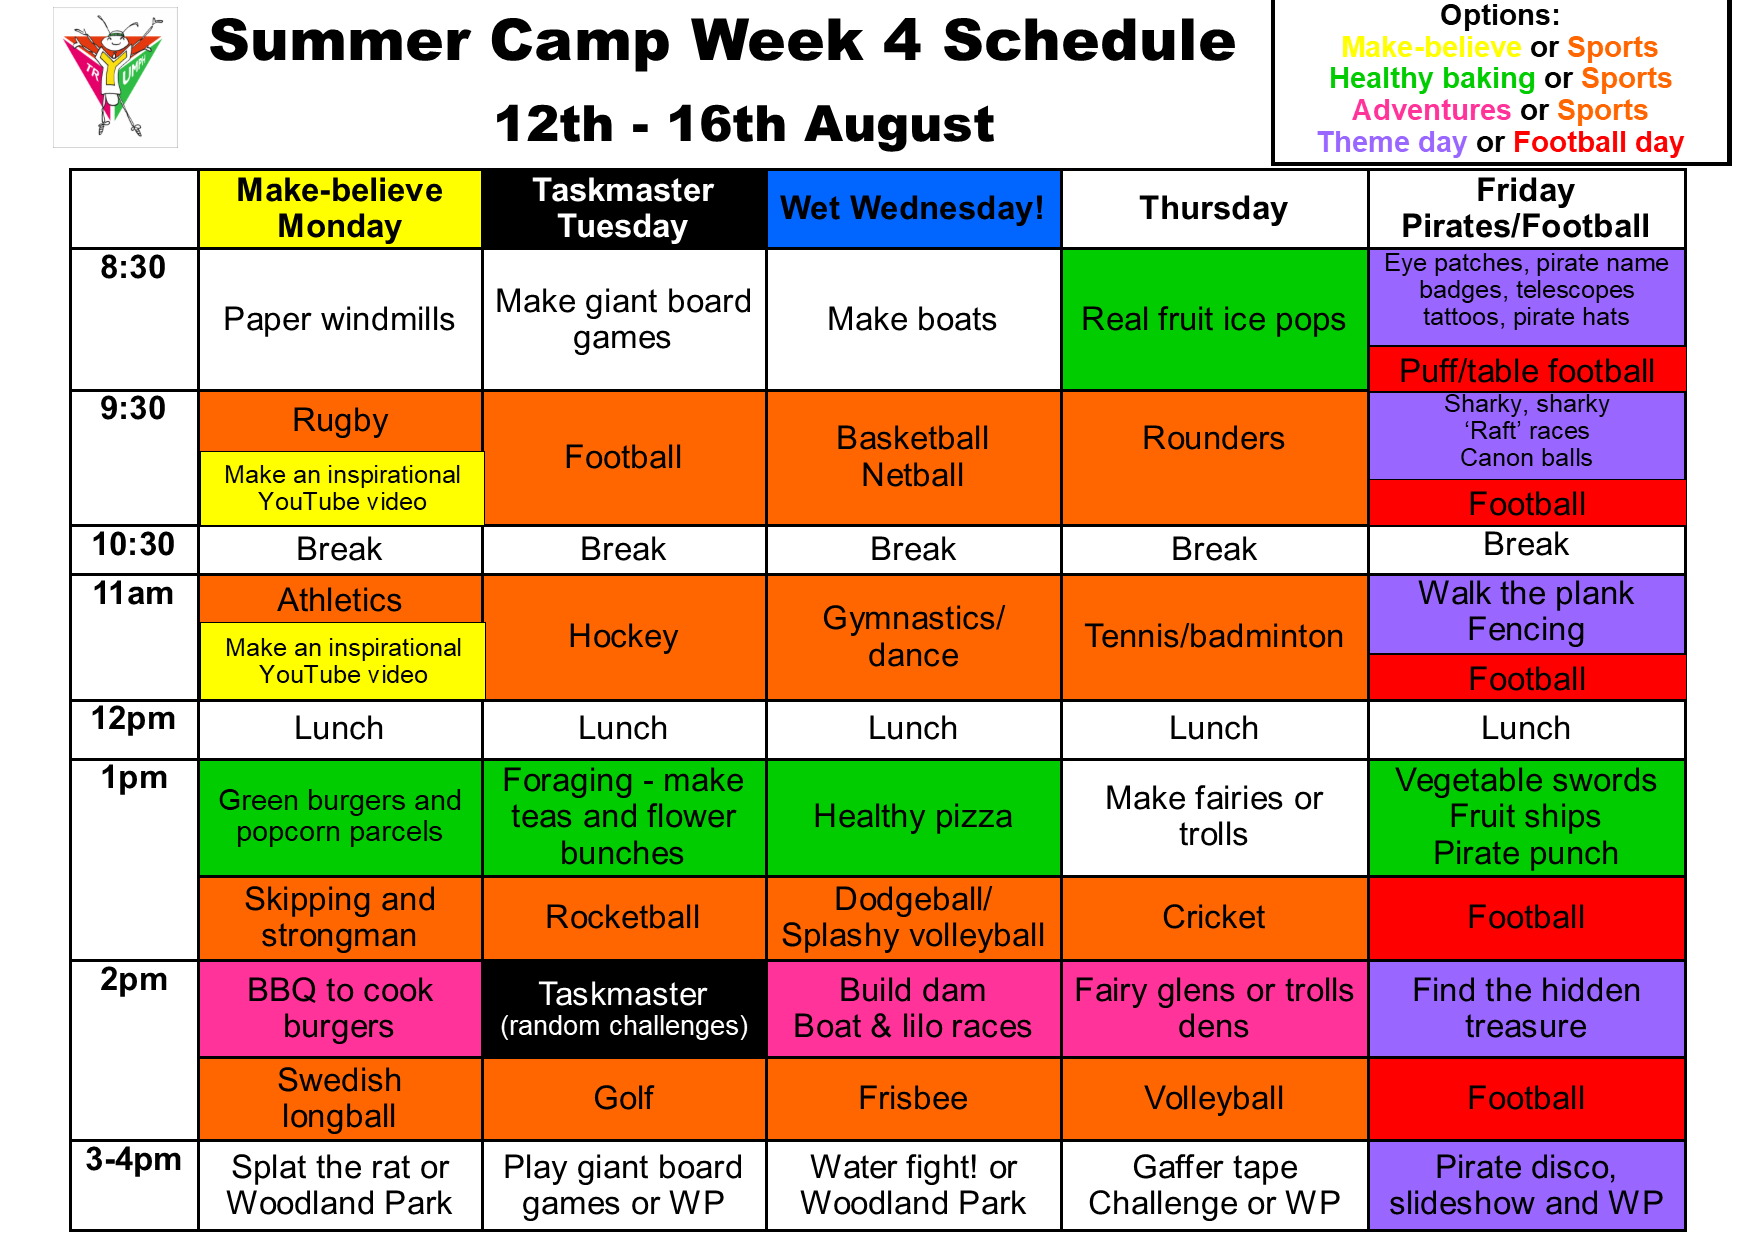 Summer camp week 4